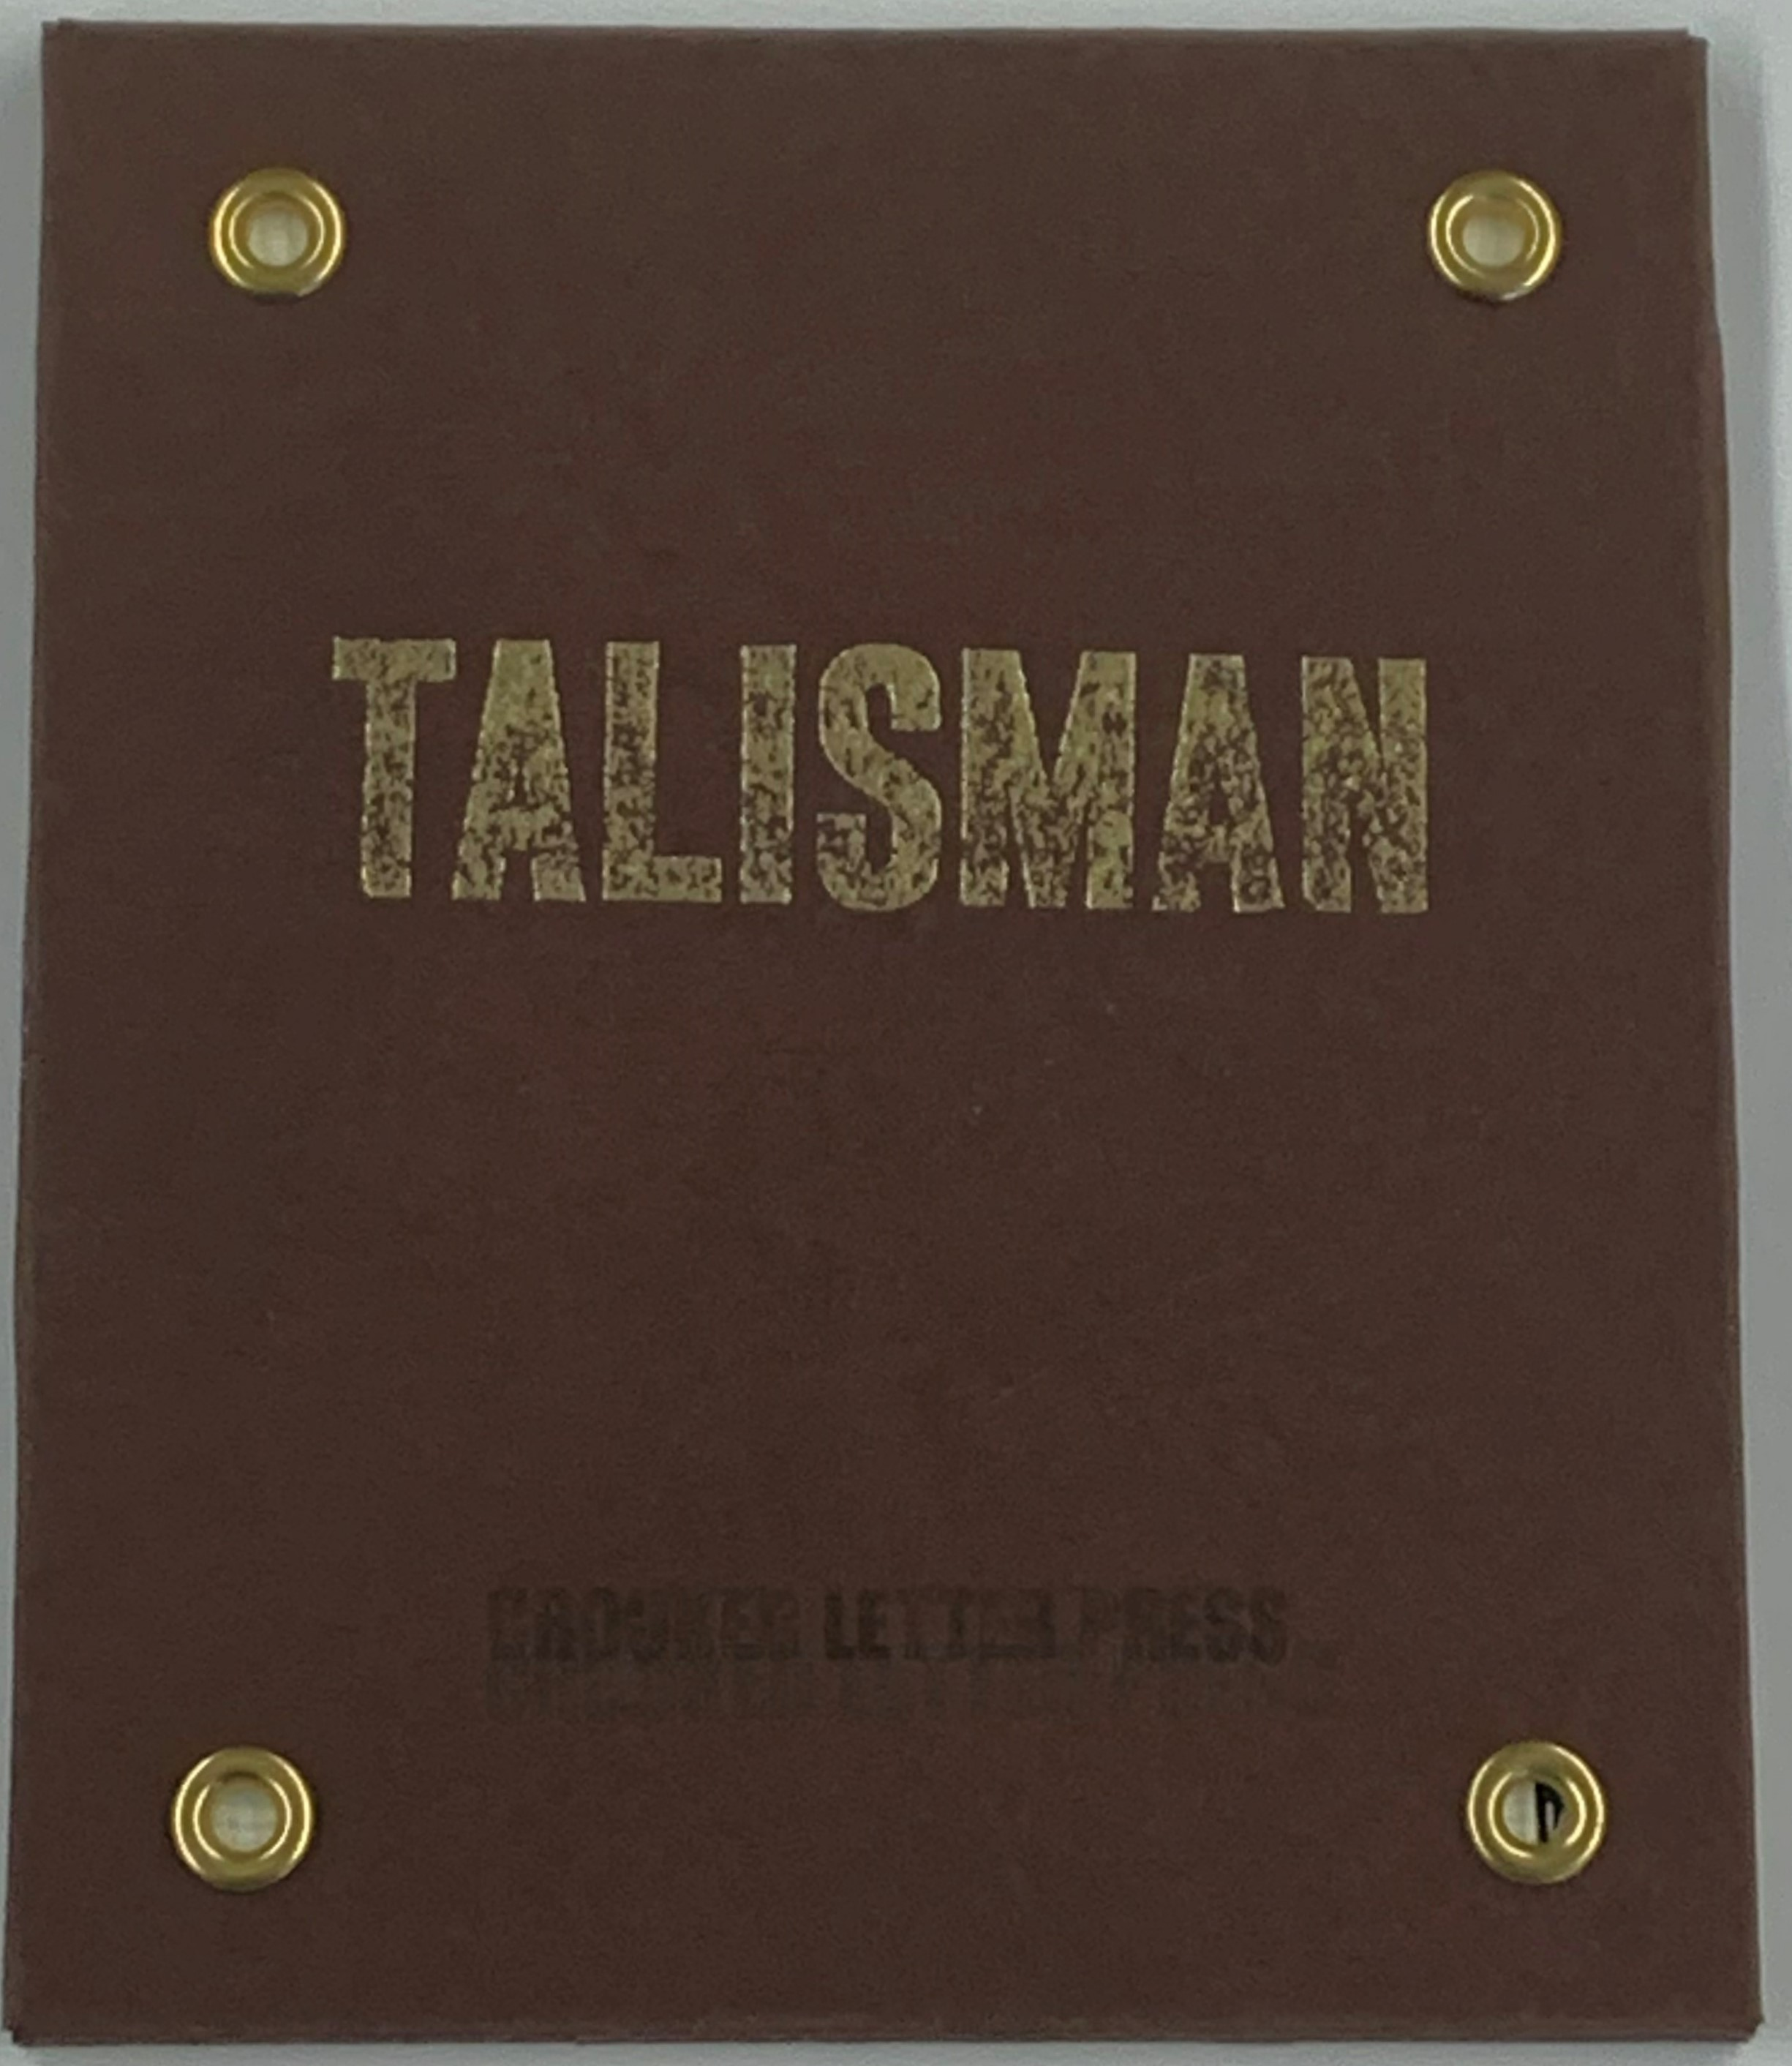 """brown cover of a wrapped enclosure with gold grommets at each corner, """"Talisman"""" printed in gold and all caps in the middle, and """"Crooked Letter Press"""" printed in black and all caps at the bottom"""